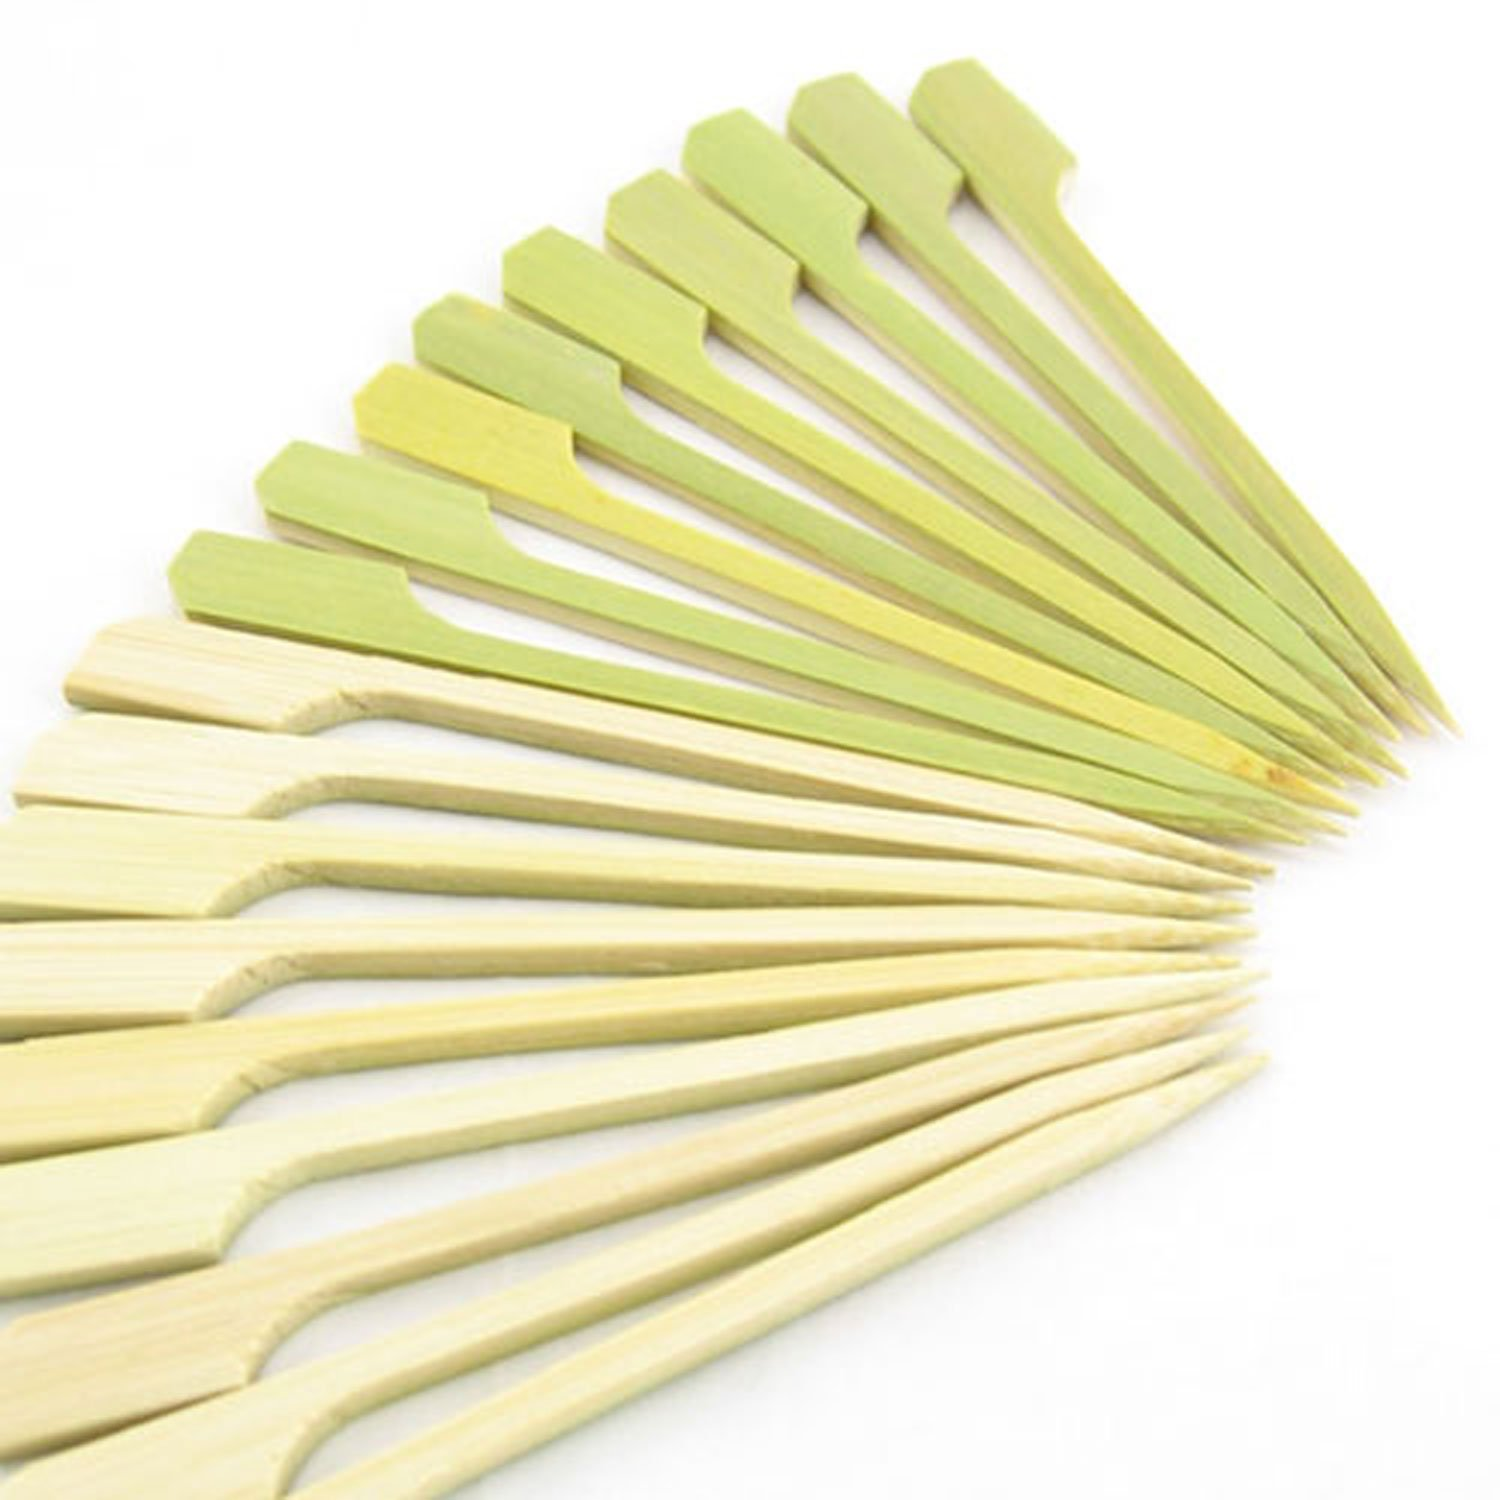 BambooMN 2.75'' Bamboo Paddle Cocktail Fruit Sandwich Food Picks Skewers for Catered Events, Holiday's, Restaurants or Buffets Party Supplies, 1000 Pieces